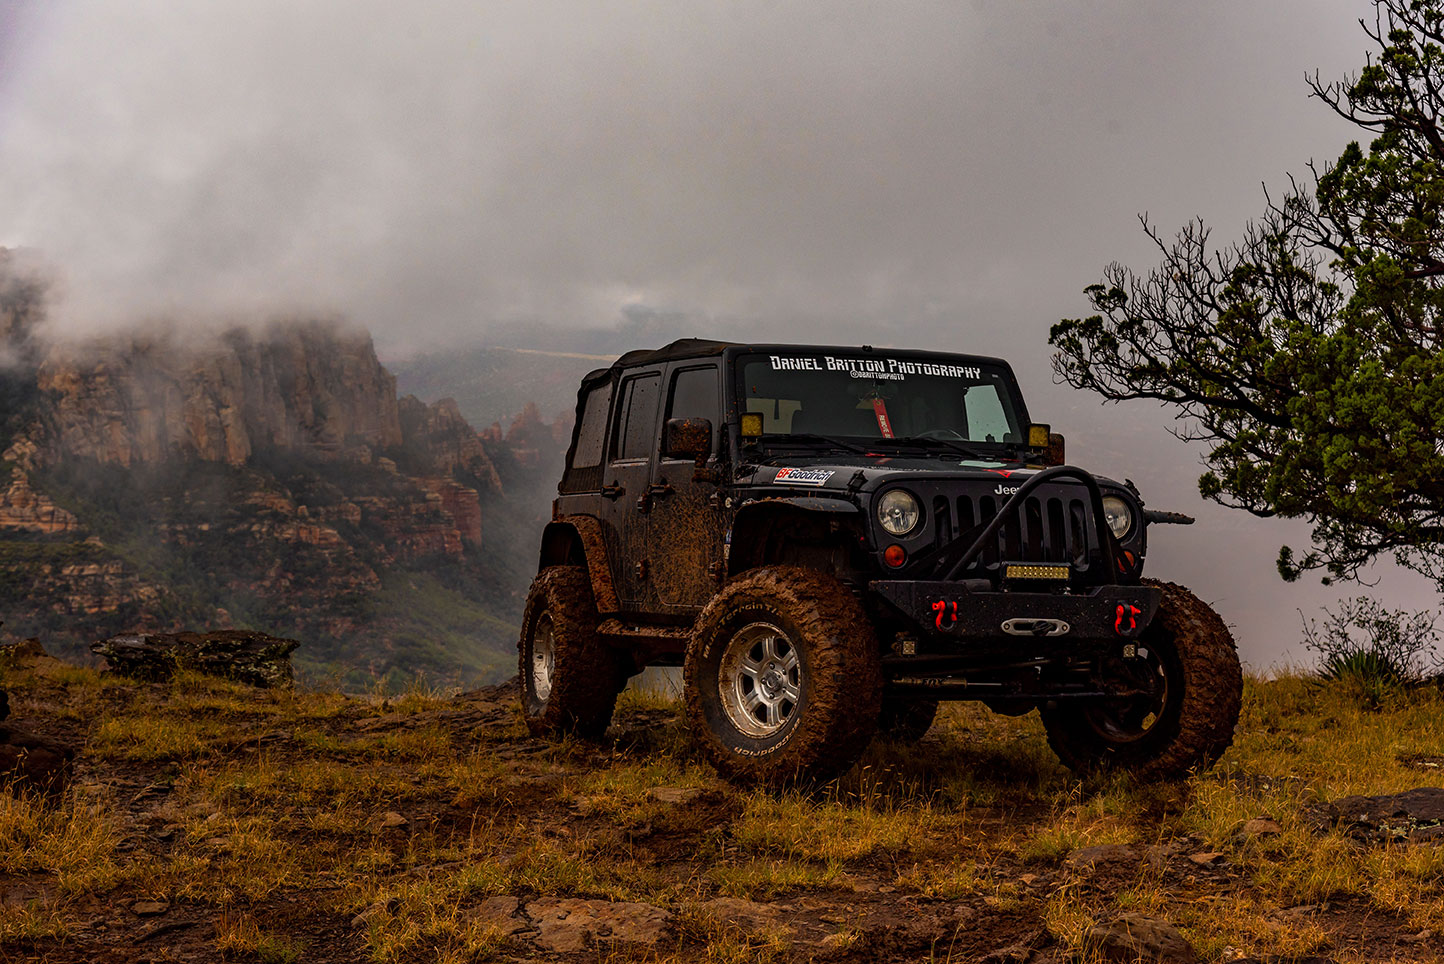 Jeep Wrangler, Off Road, Rock Crawling, Red Rock Canyon, Nevada, Automobile, Adventure Lifestyle Photographer, Daniel Britton